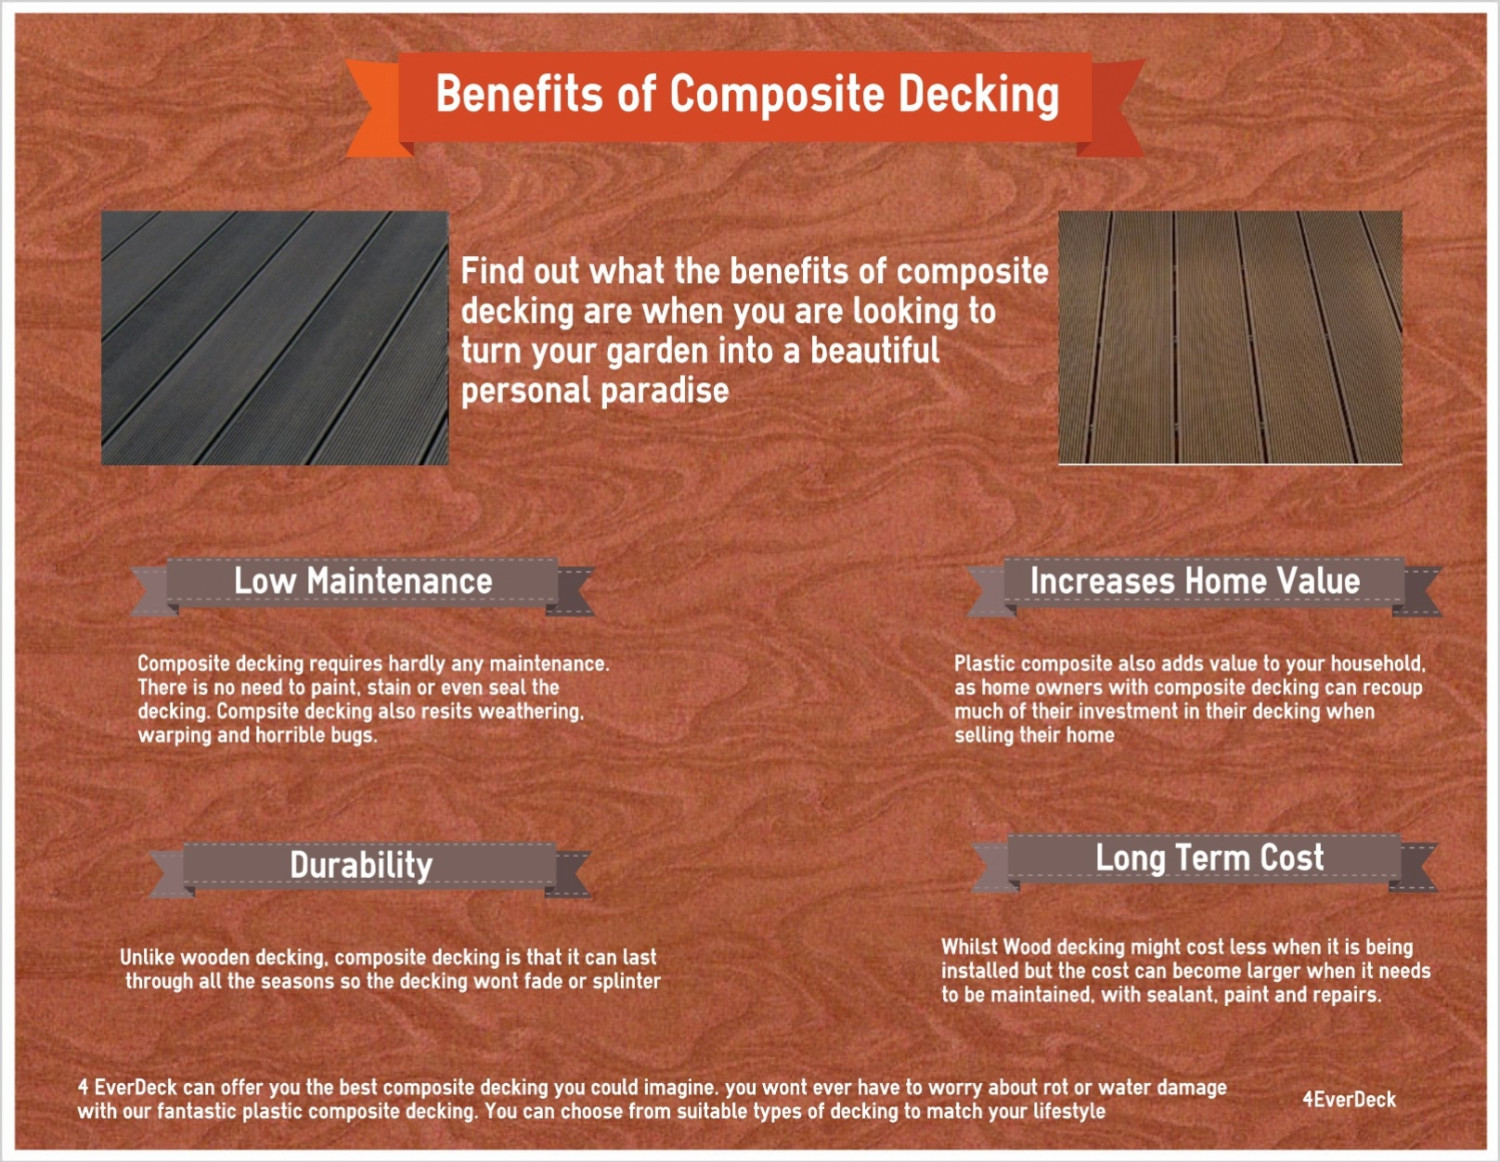 Benefits of Composite Decking Infographic